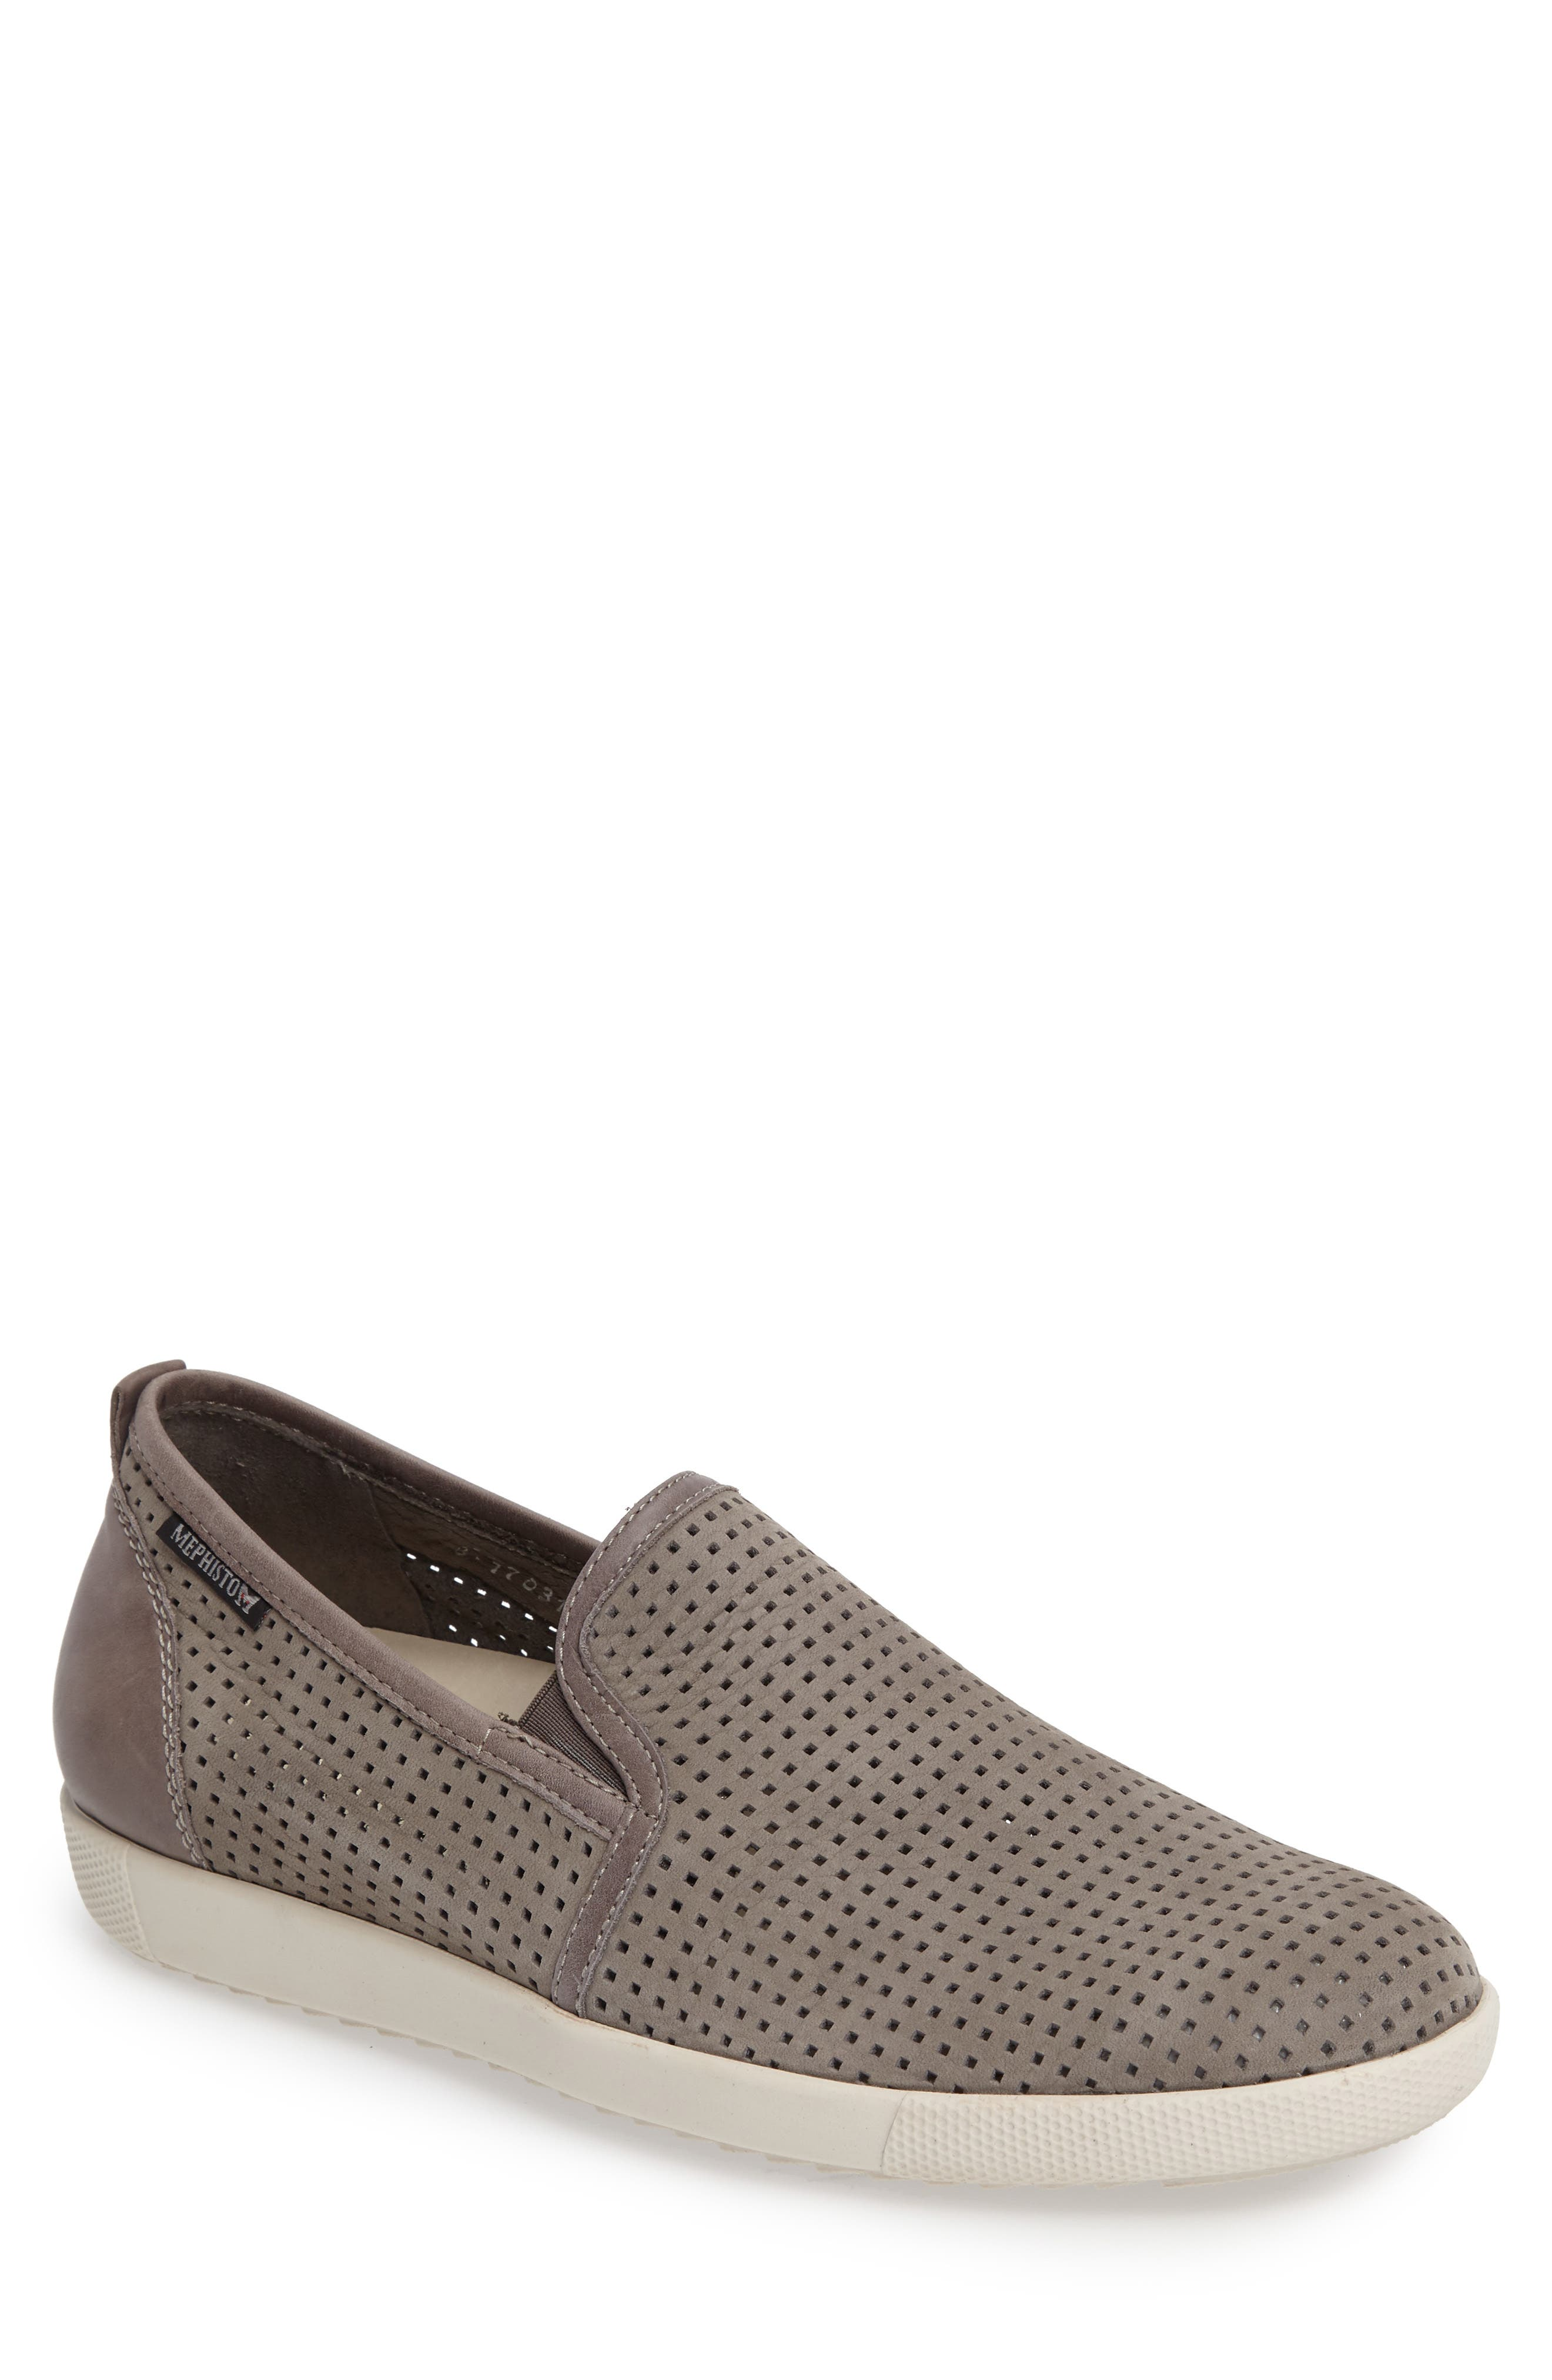 Mephisto 'Ulrich' Perforated Leather